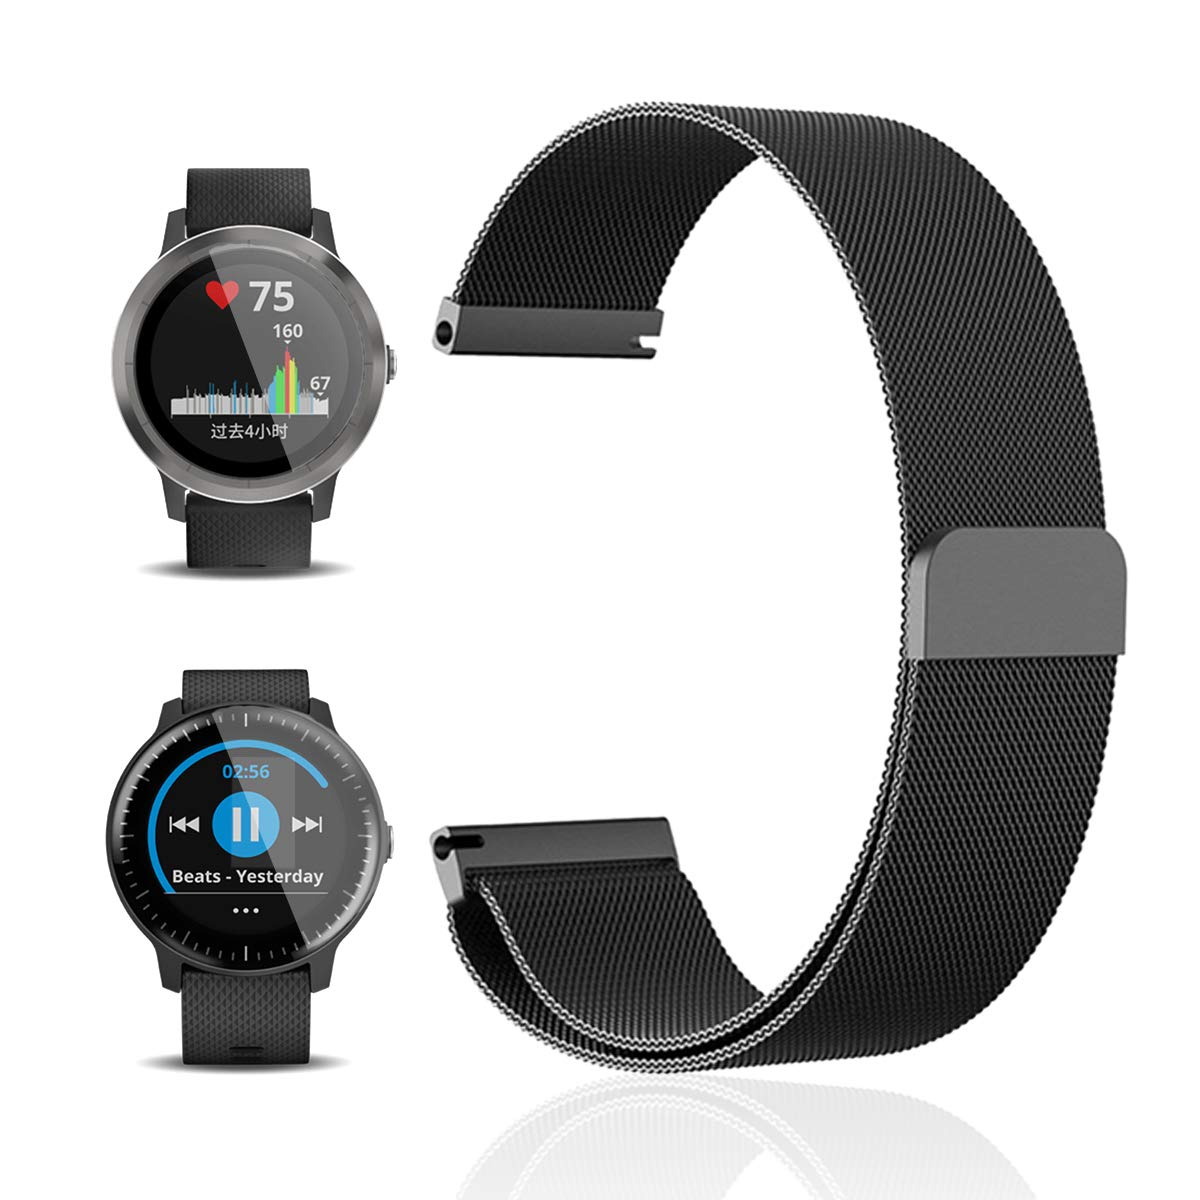 Amazon.com: for Suunto 3 Fitness/Garmin vivoactive 3 Band ...